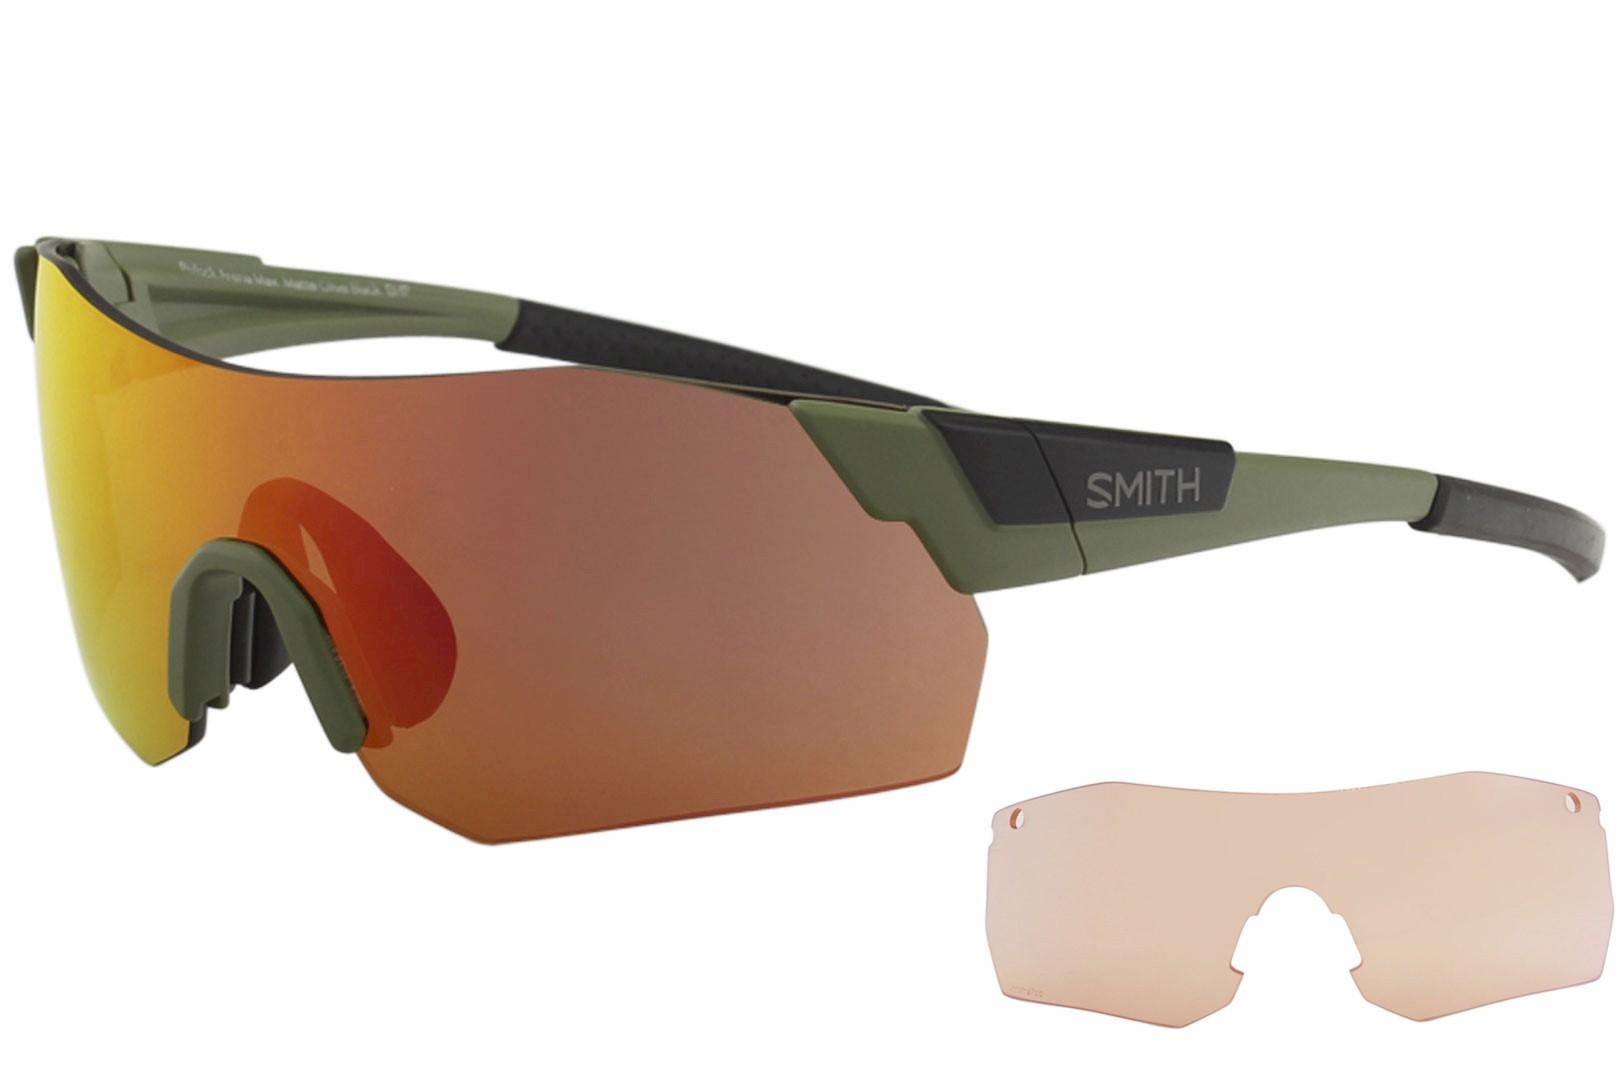 d65f4ea057 Smith Optics Pivlock Arena Max X6 Fashion Shield Sunglasses by Smith  Optics. Touch to zoom